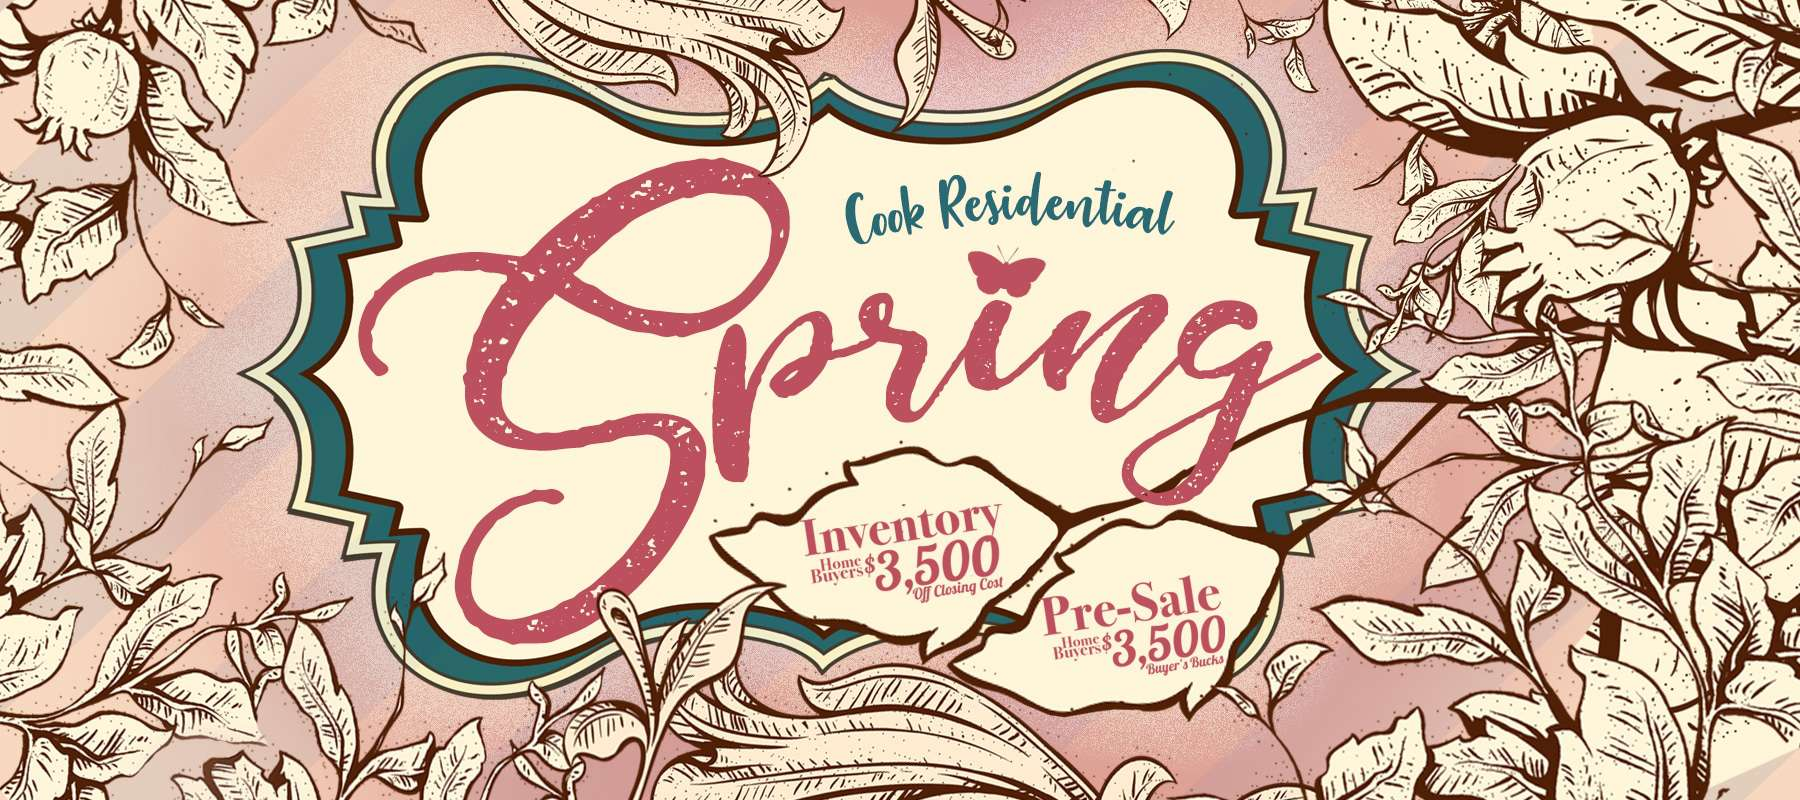 Cook Residential Spring 2018 Incentive $3500 off new homes